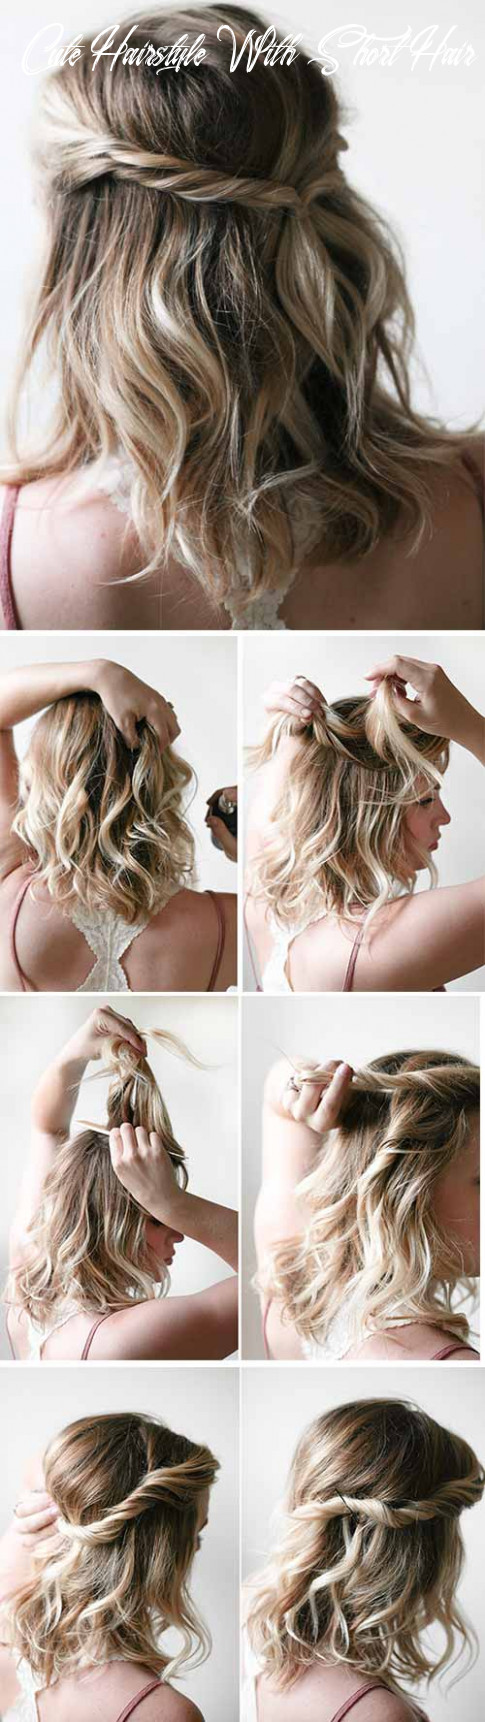 12 incredible diy short hairstyles a step by step guide cute hairstyle with short hair